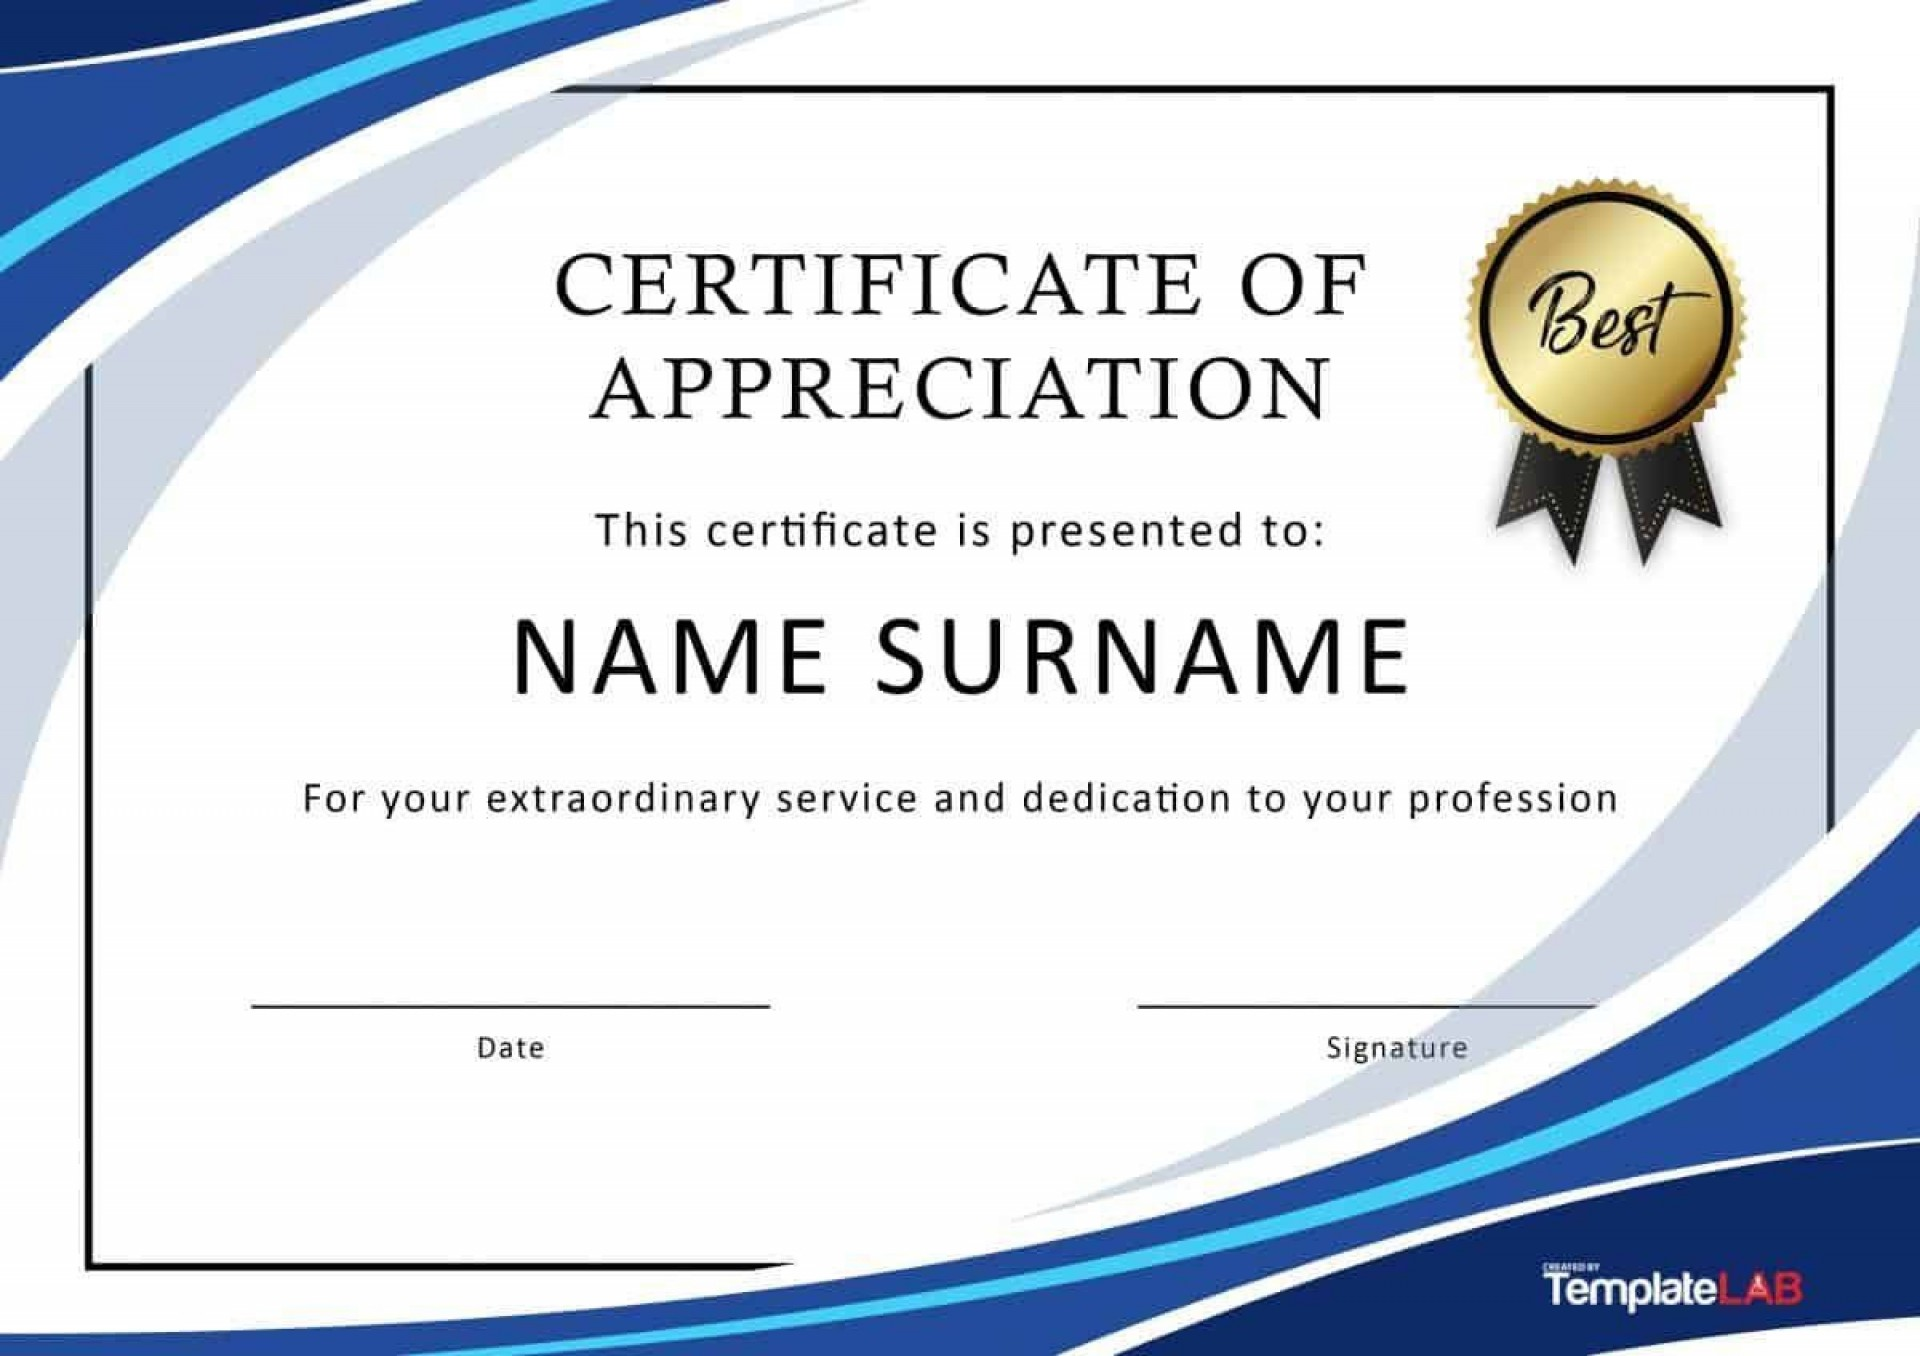 007 Impressive Free Printable Blank Certificate Template Photo  Templates Gift Of Achievement1920